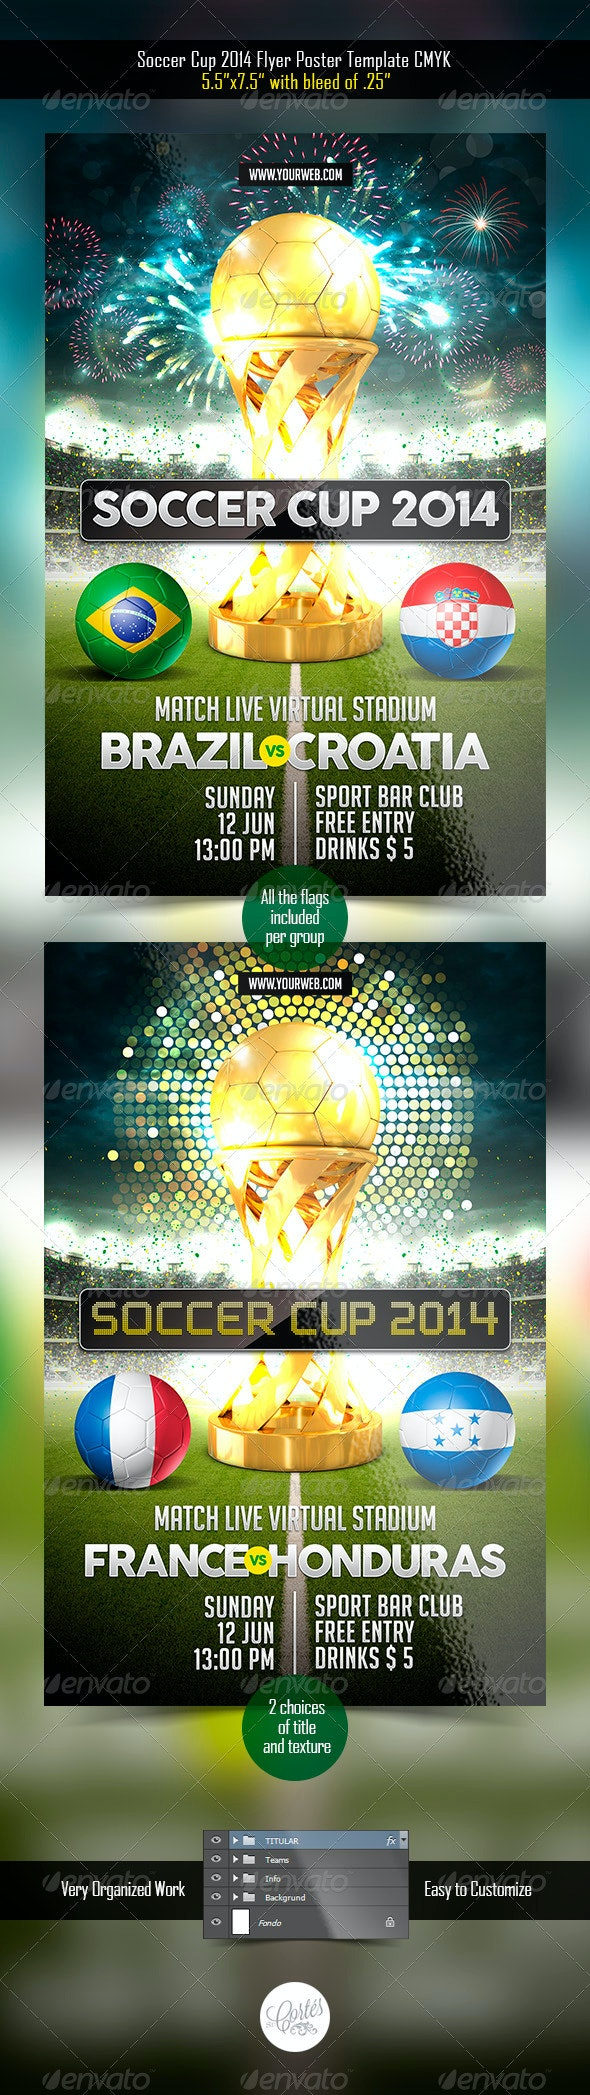 Soccer Cup 2014 Flyer - Sports Events